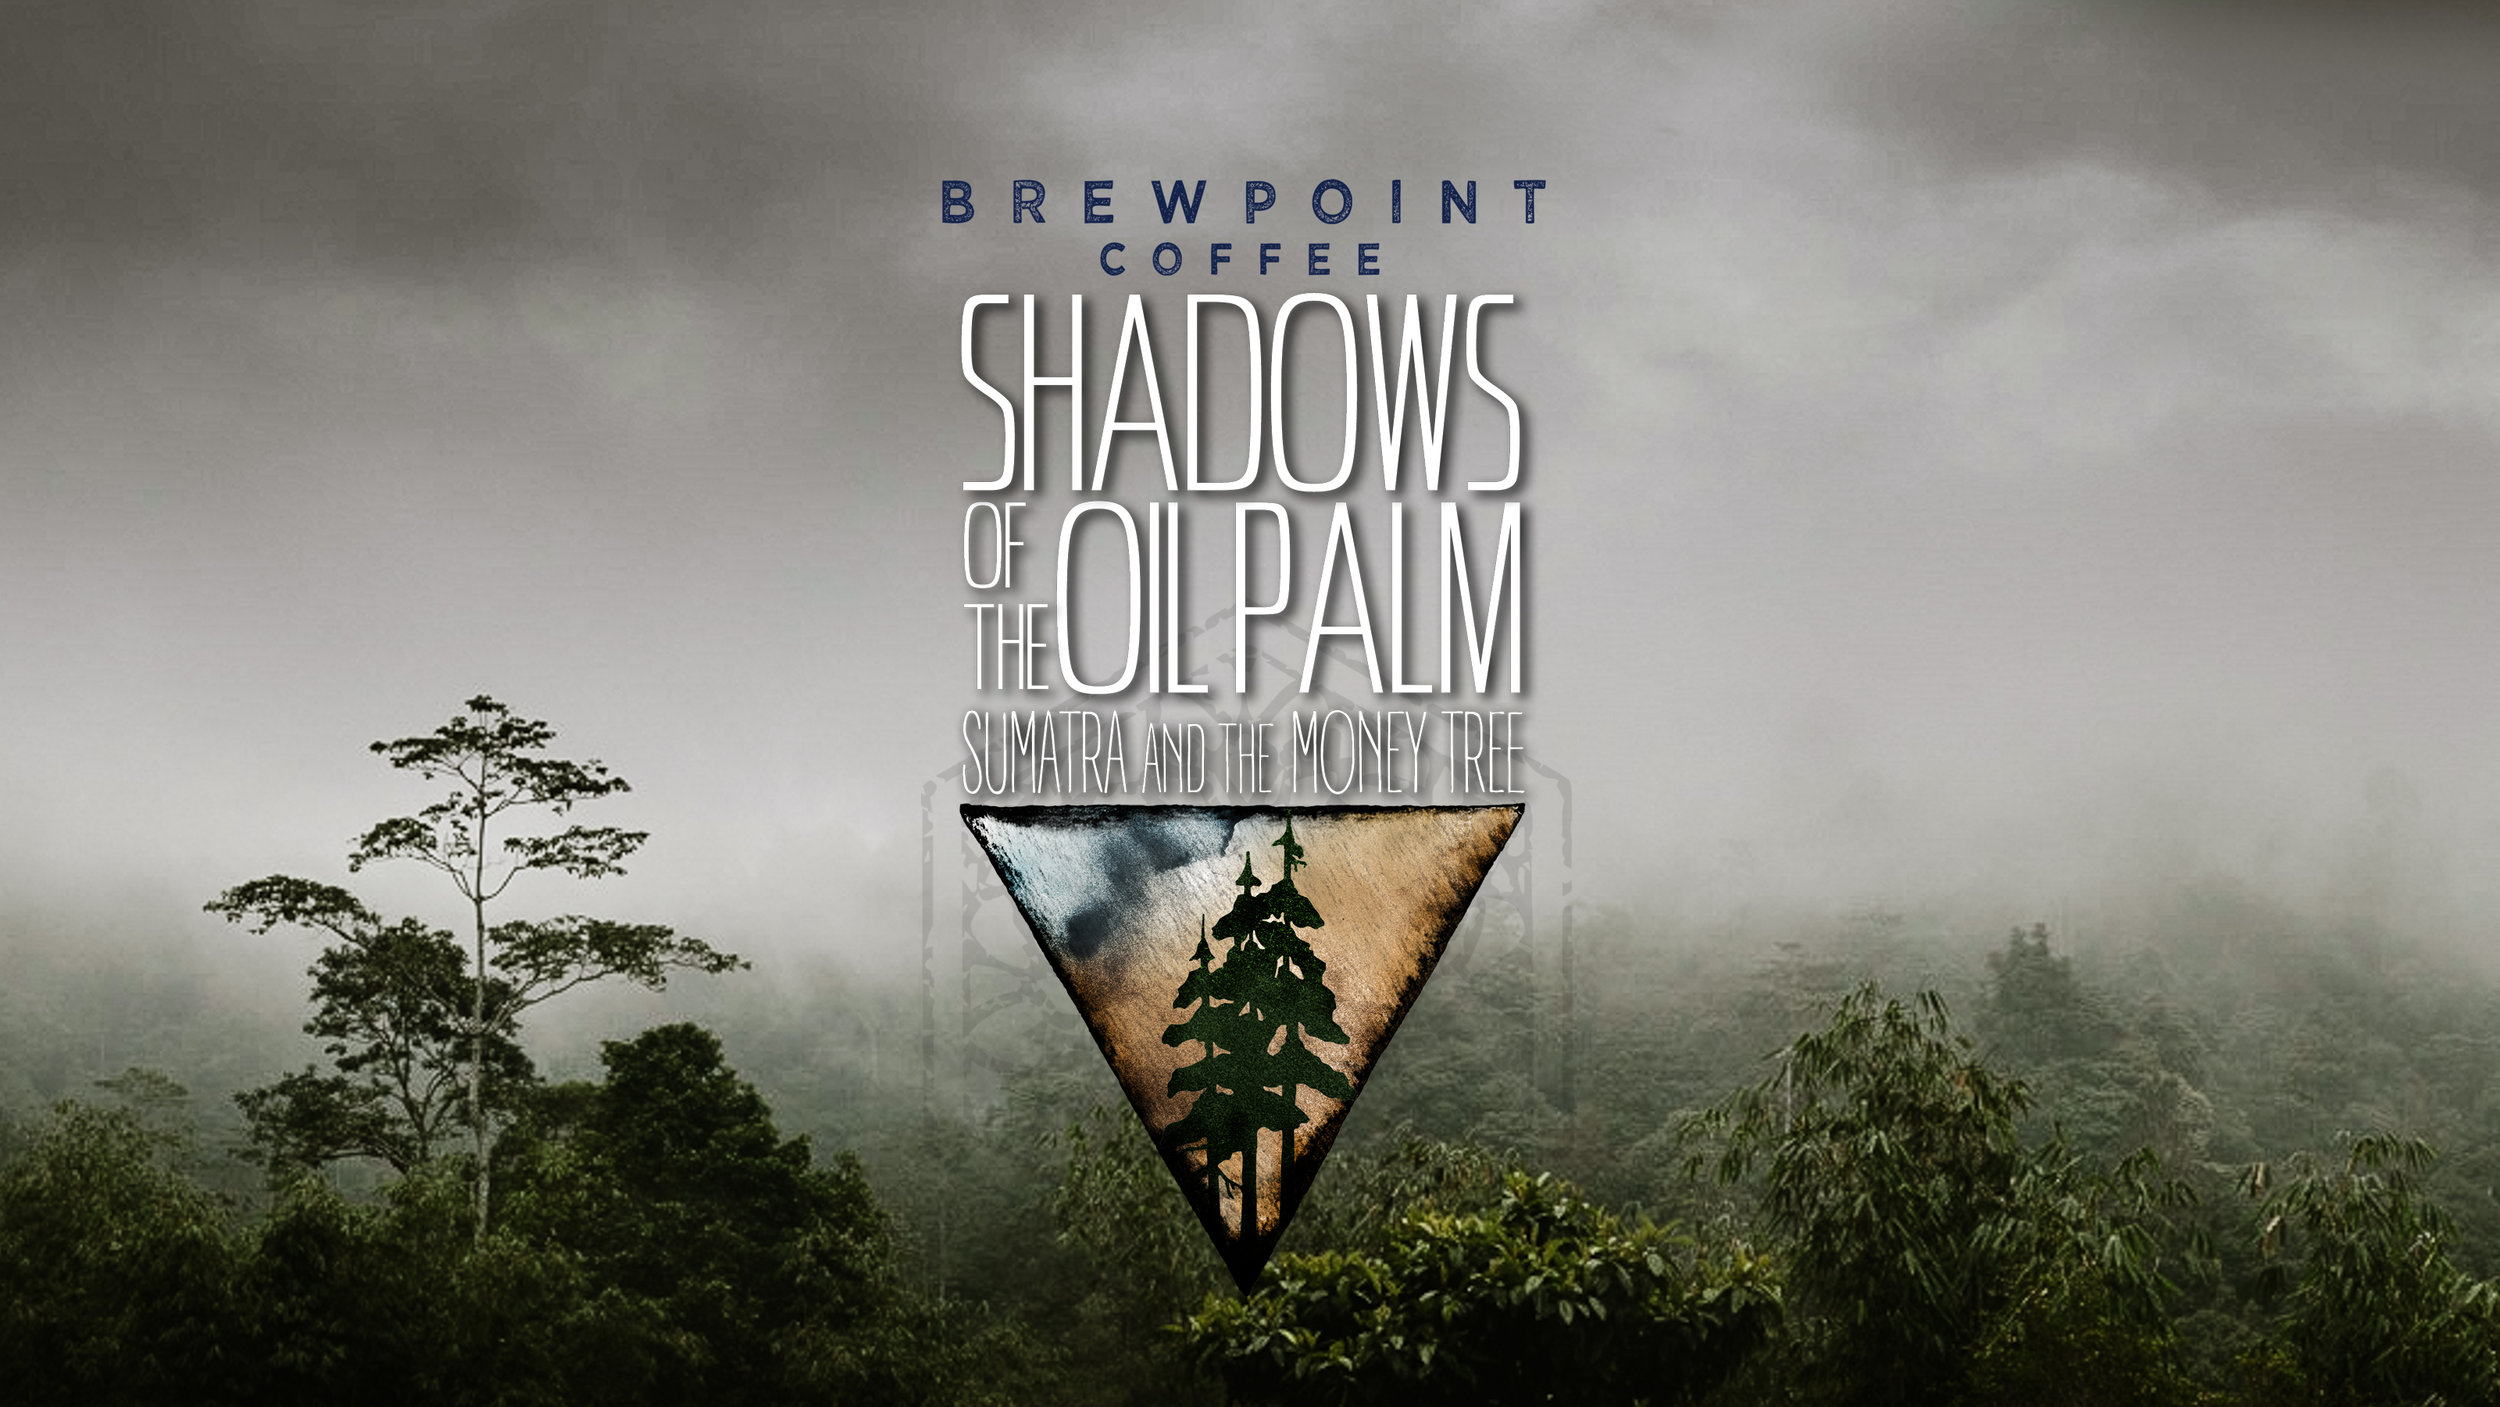 SHADOWS-FB-BANNER-Brewpoint.jpg